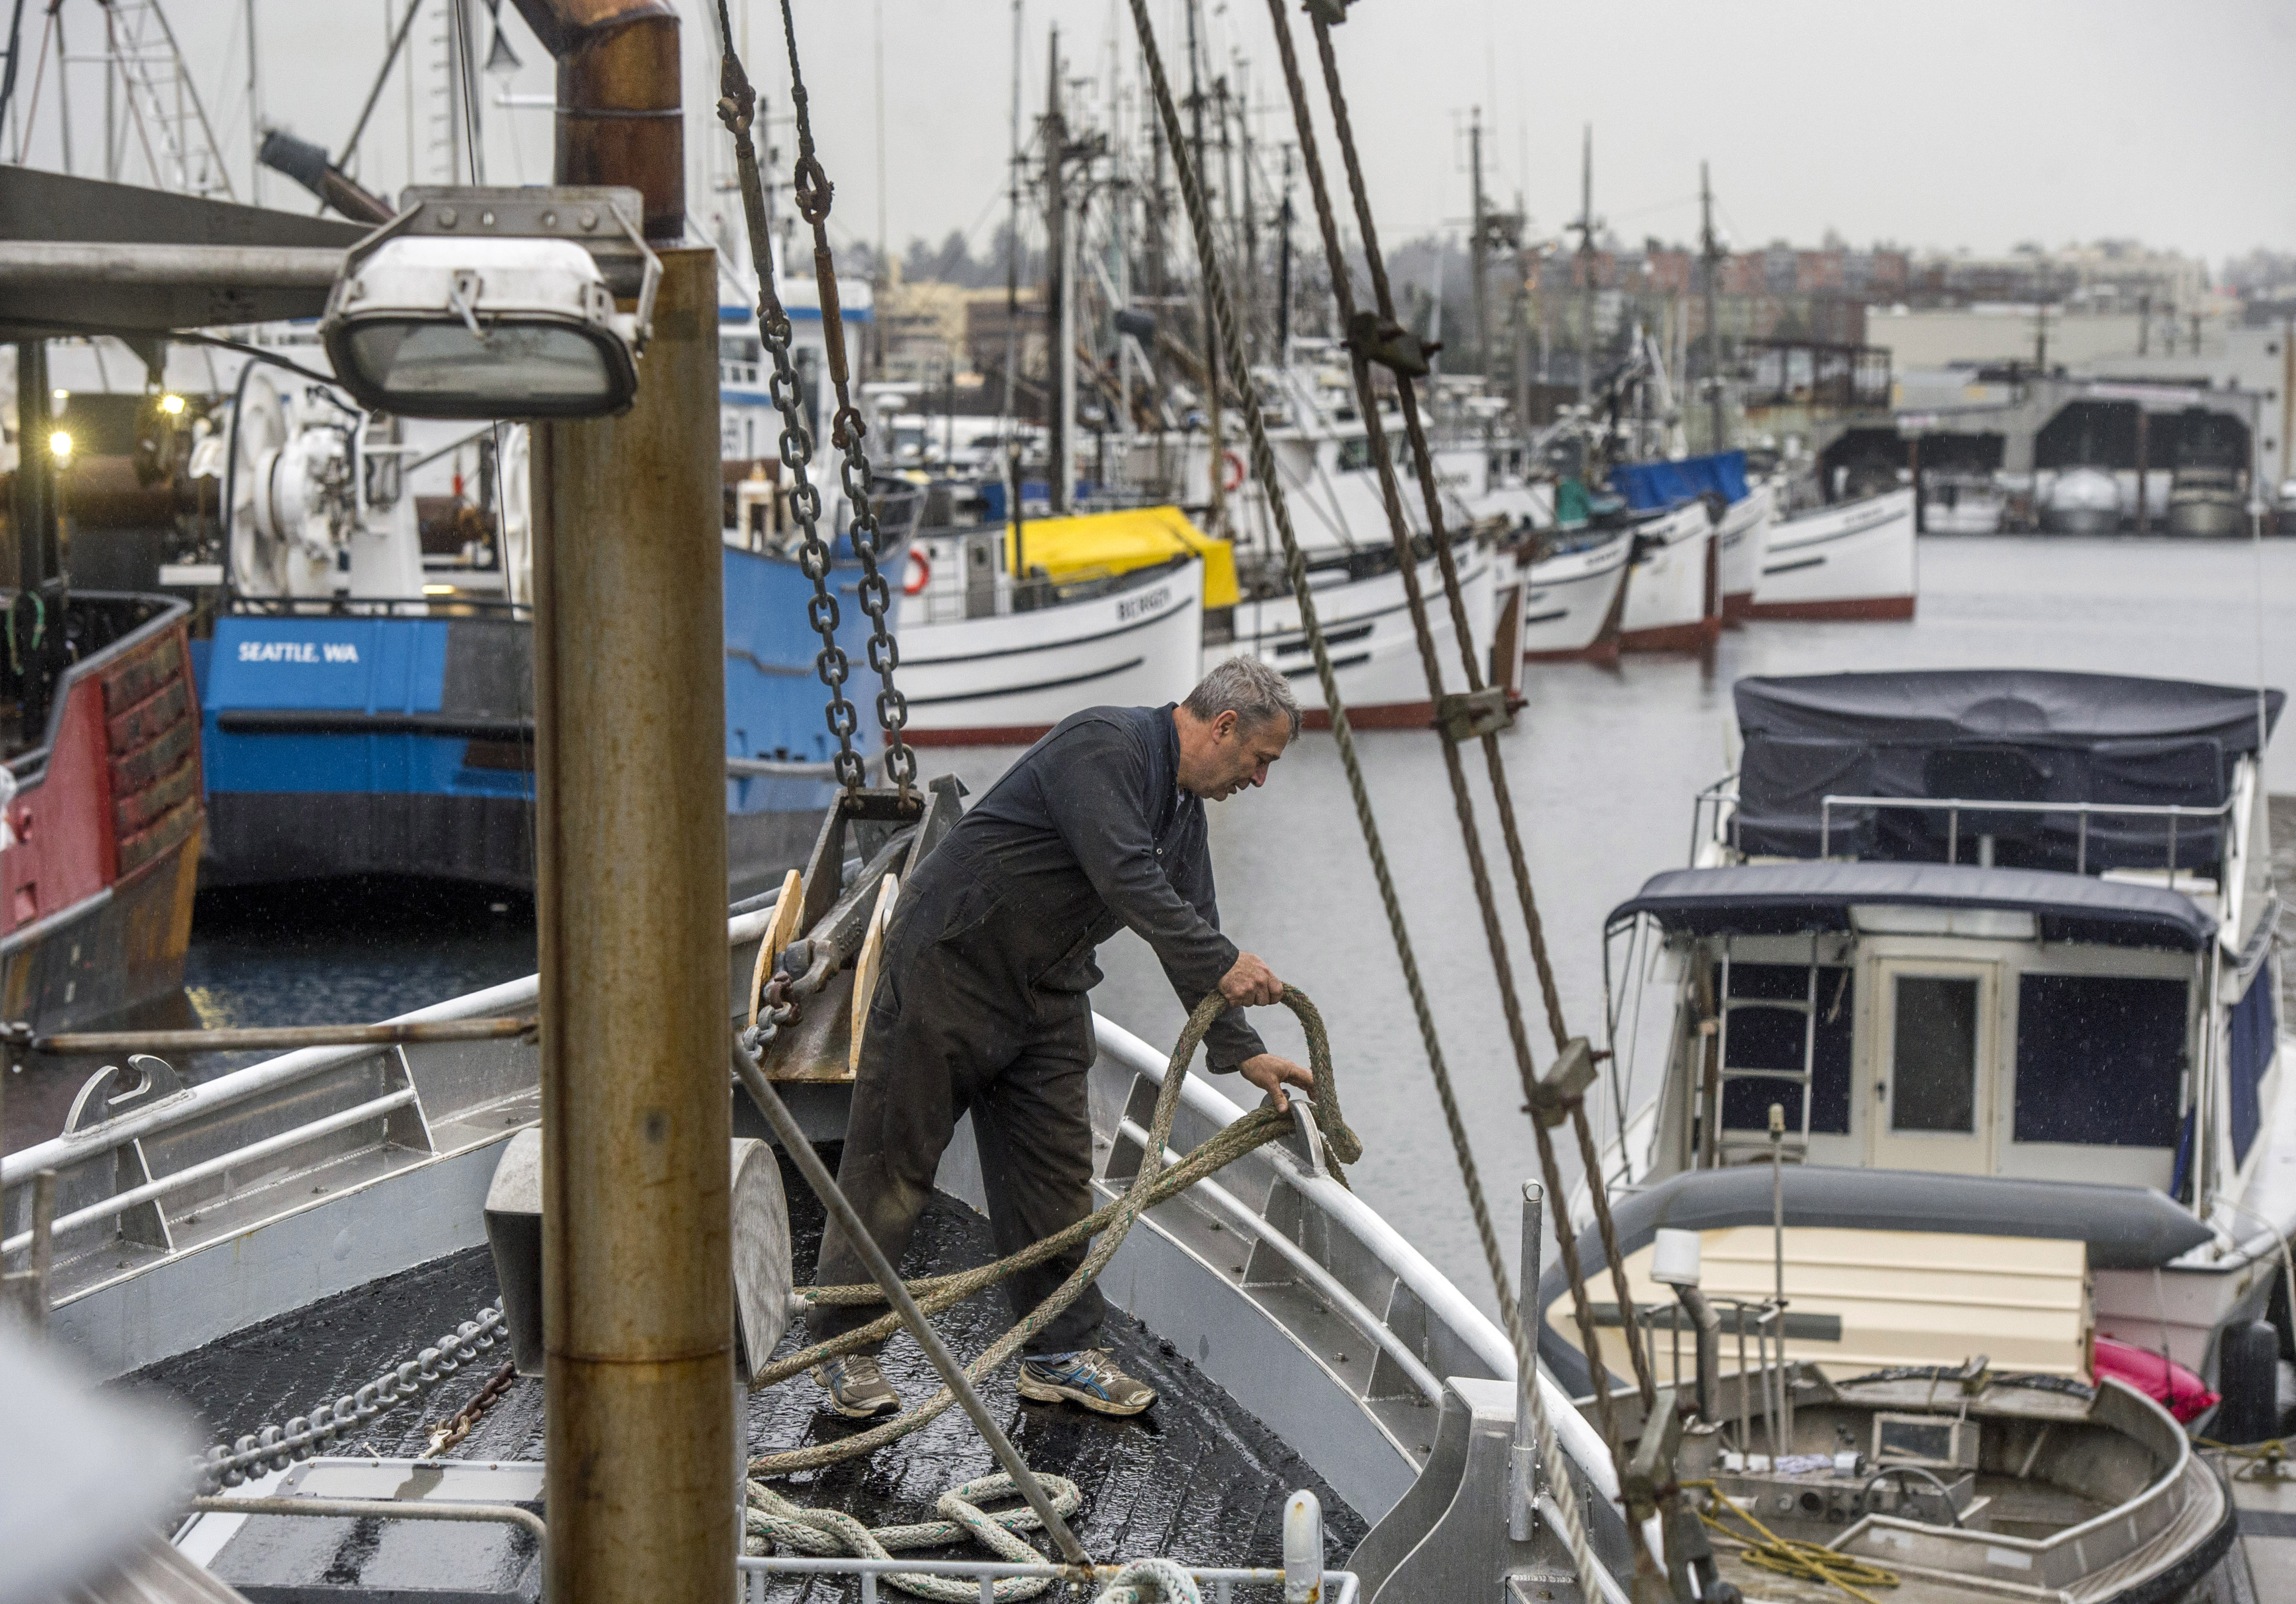 Food fight pits iconic halibut against exports, fast food